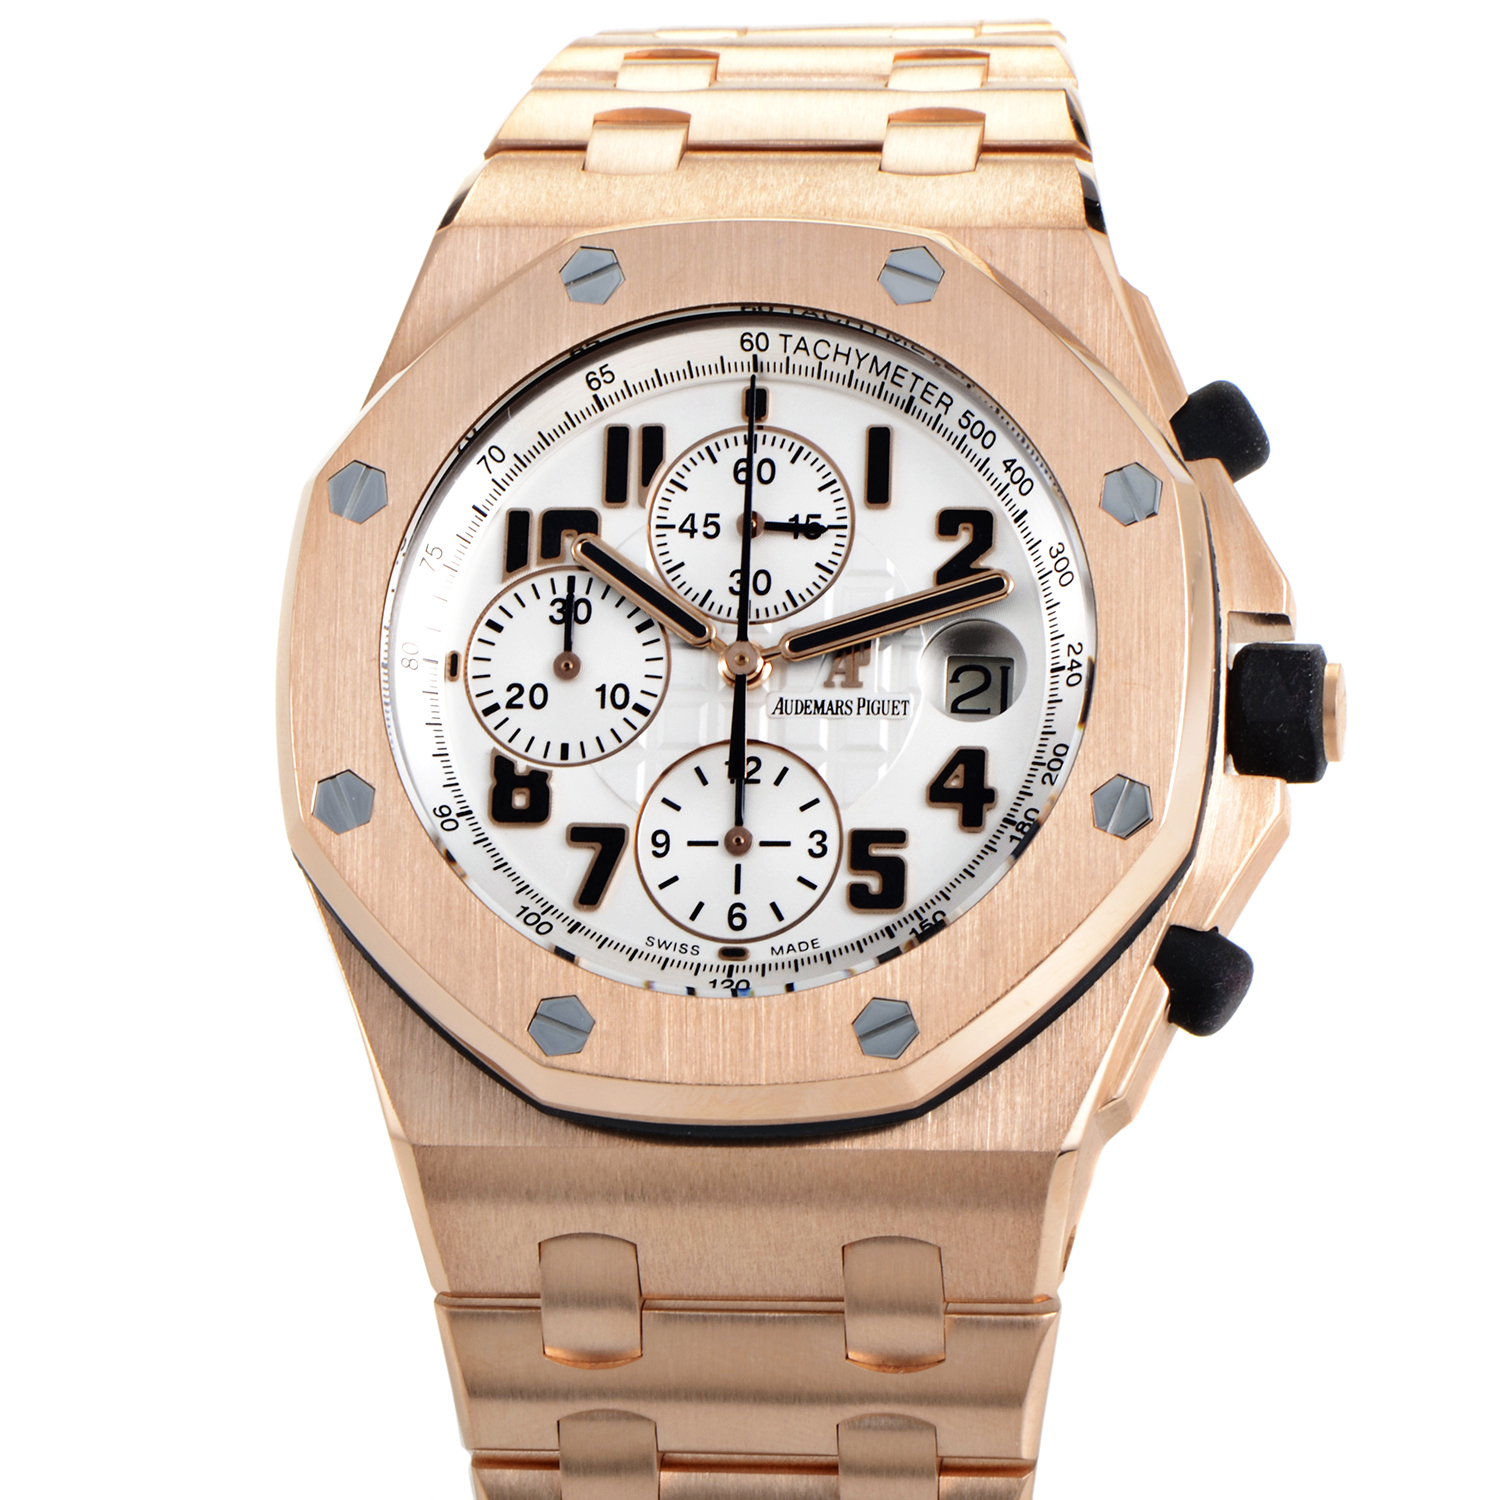 Royal Oak Offshore Chronograph 26170OR.OO.1000OR.01